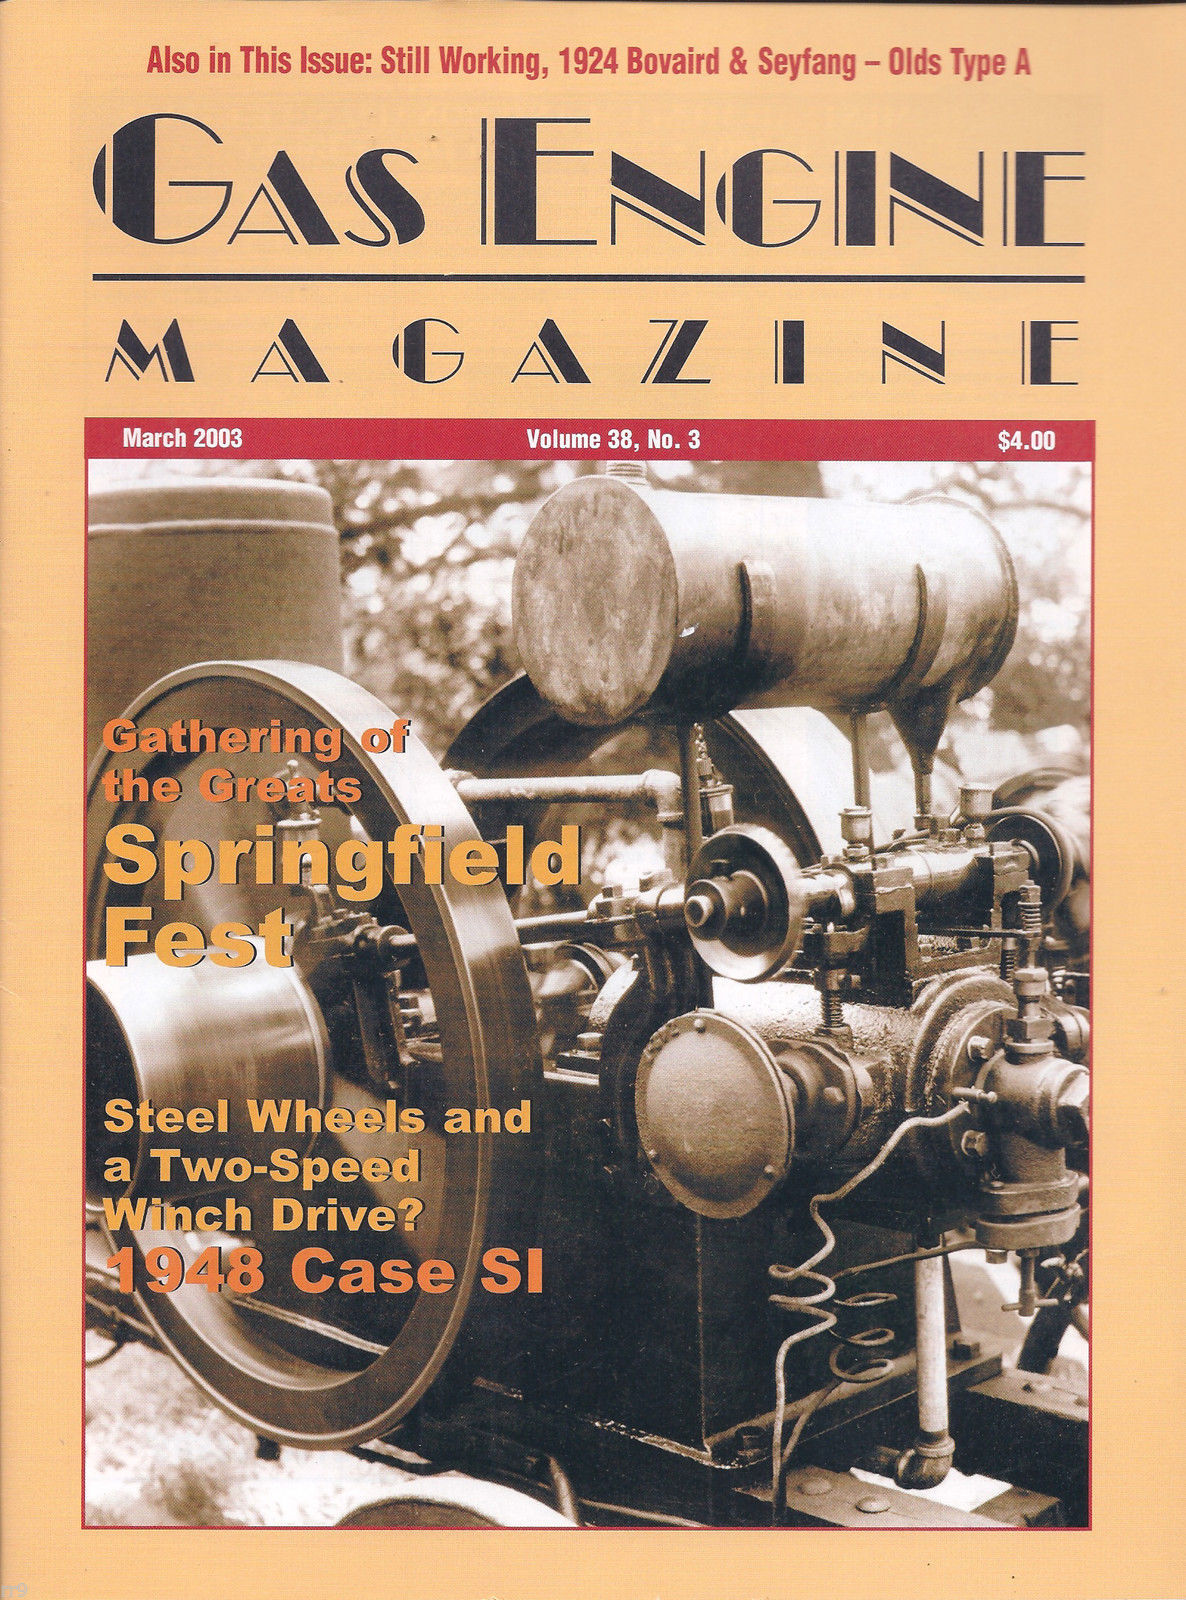 Primary image for Gas Engine Magazine March 2003 Volume 38, No. 3